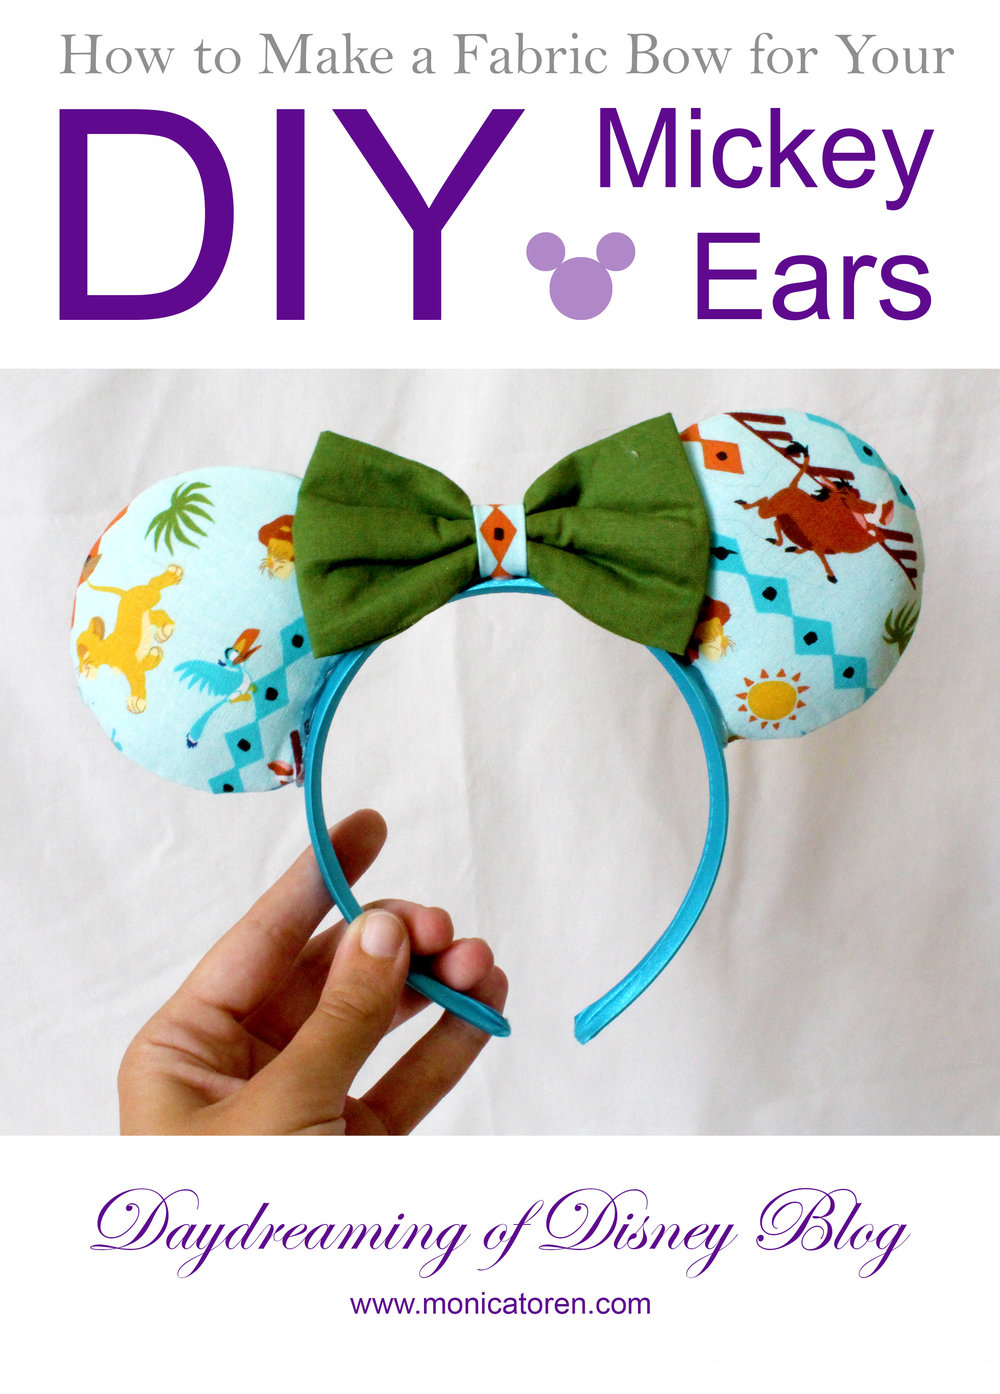 Daydreaming of Disney Blog - How to Make a Fabric Bow for Your DIY Mickey Ears - http://www.monicatoren.com #diy #mickeyears #minnieears #disney #disneyears #tutorial